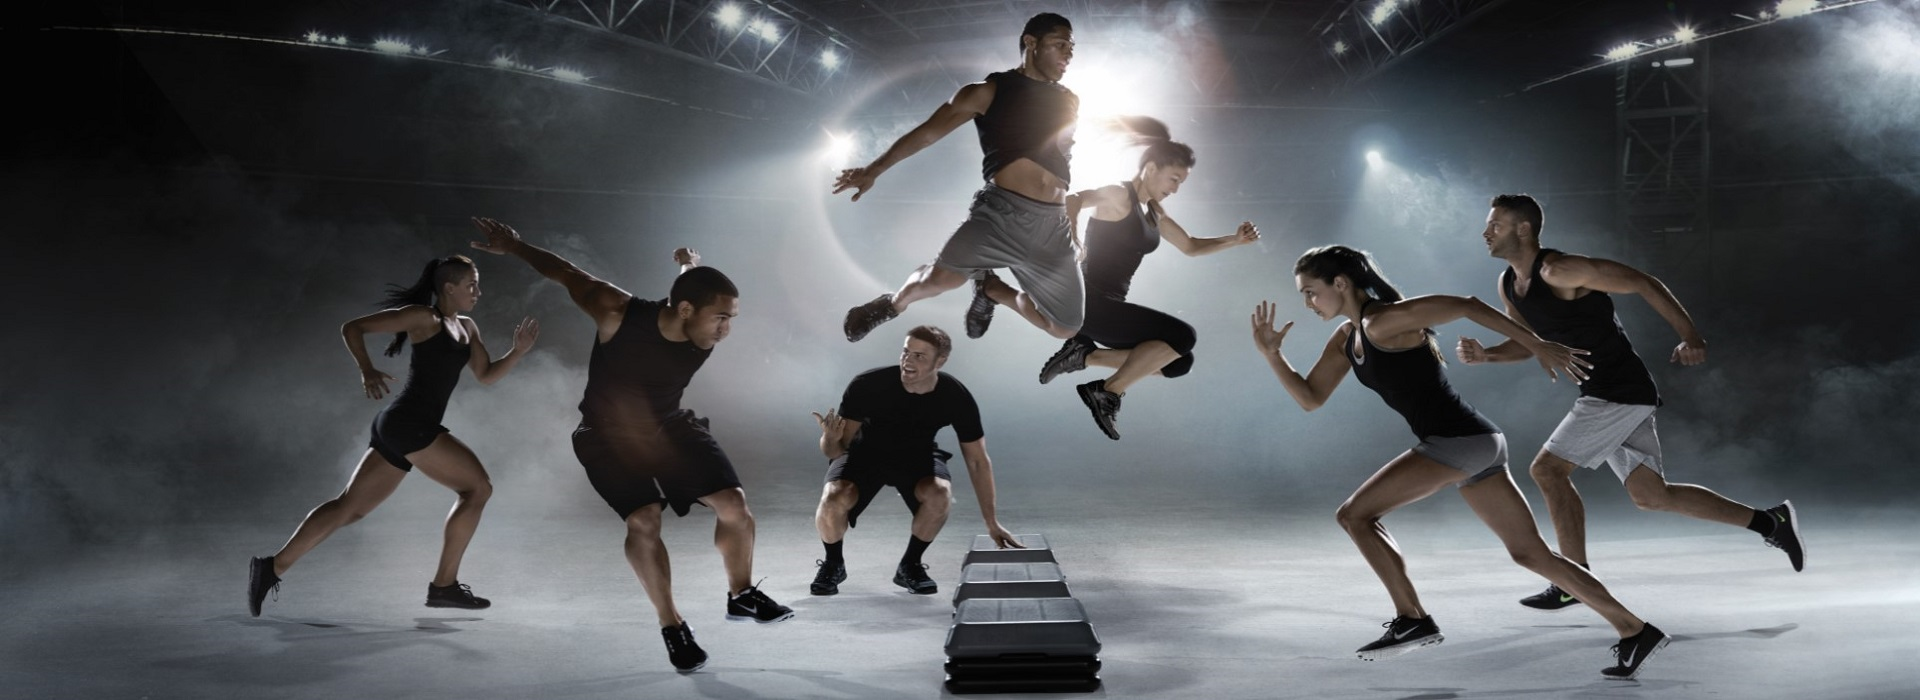 Les Mills grit plyometrics with coach encouraging 3 males and 3 females to run faster and jump higher